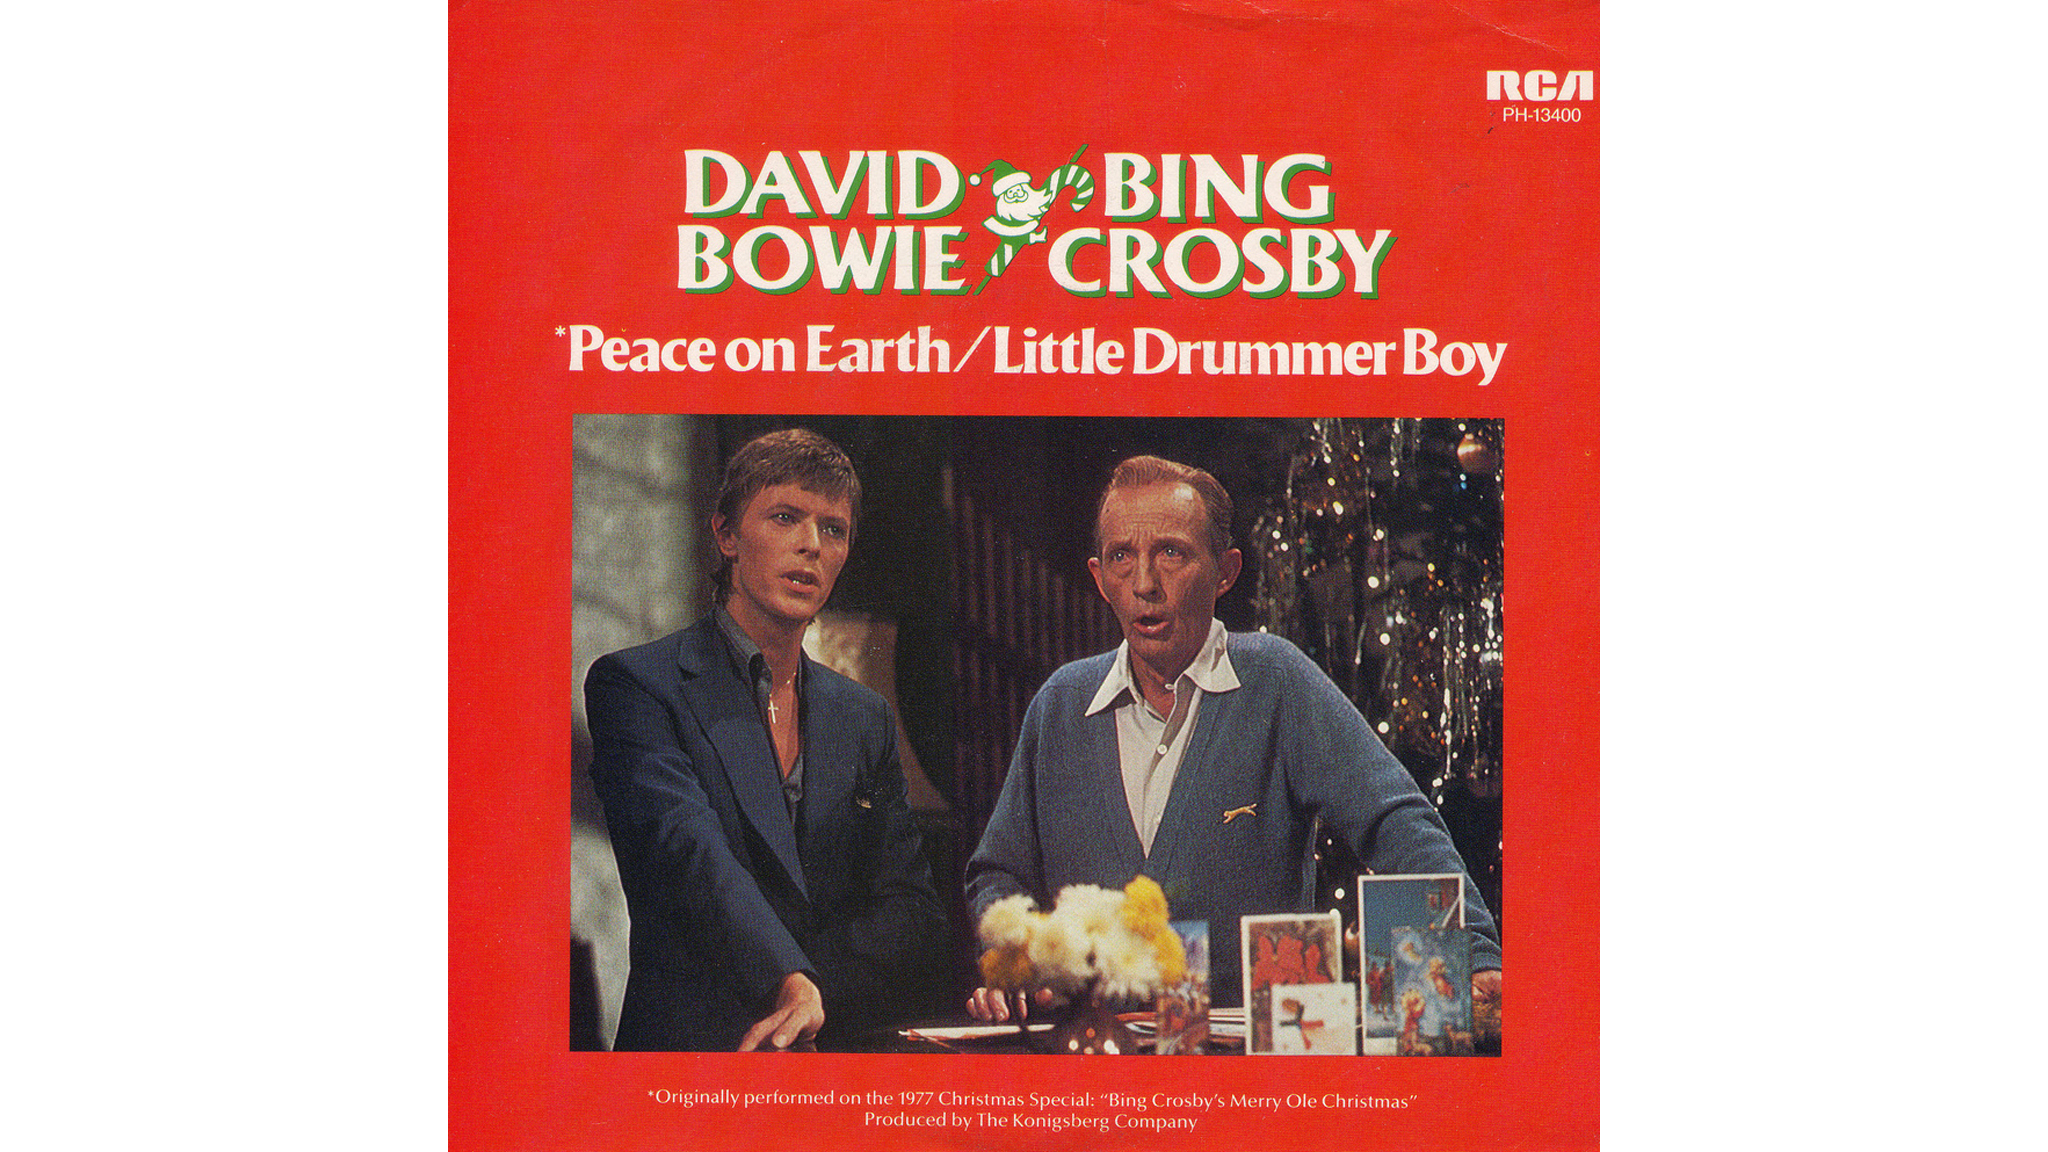 'The Little Drummer Boy/Peace on Earth'